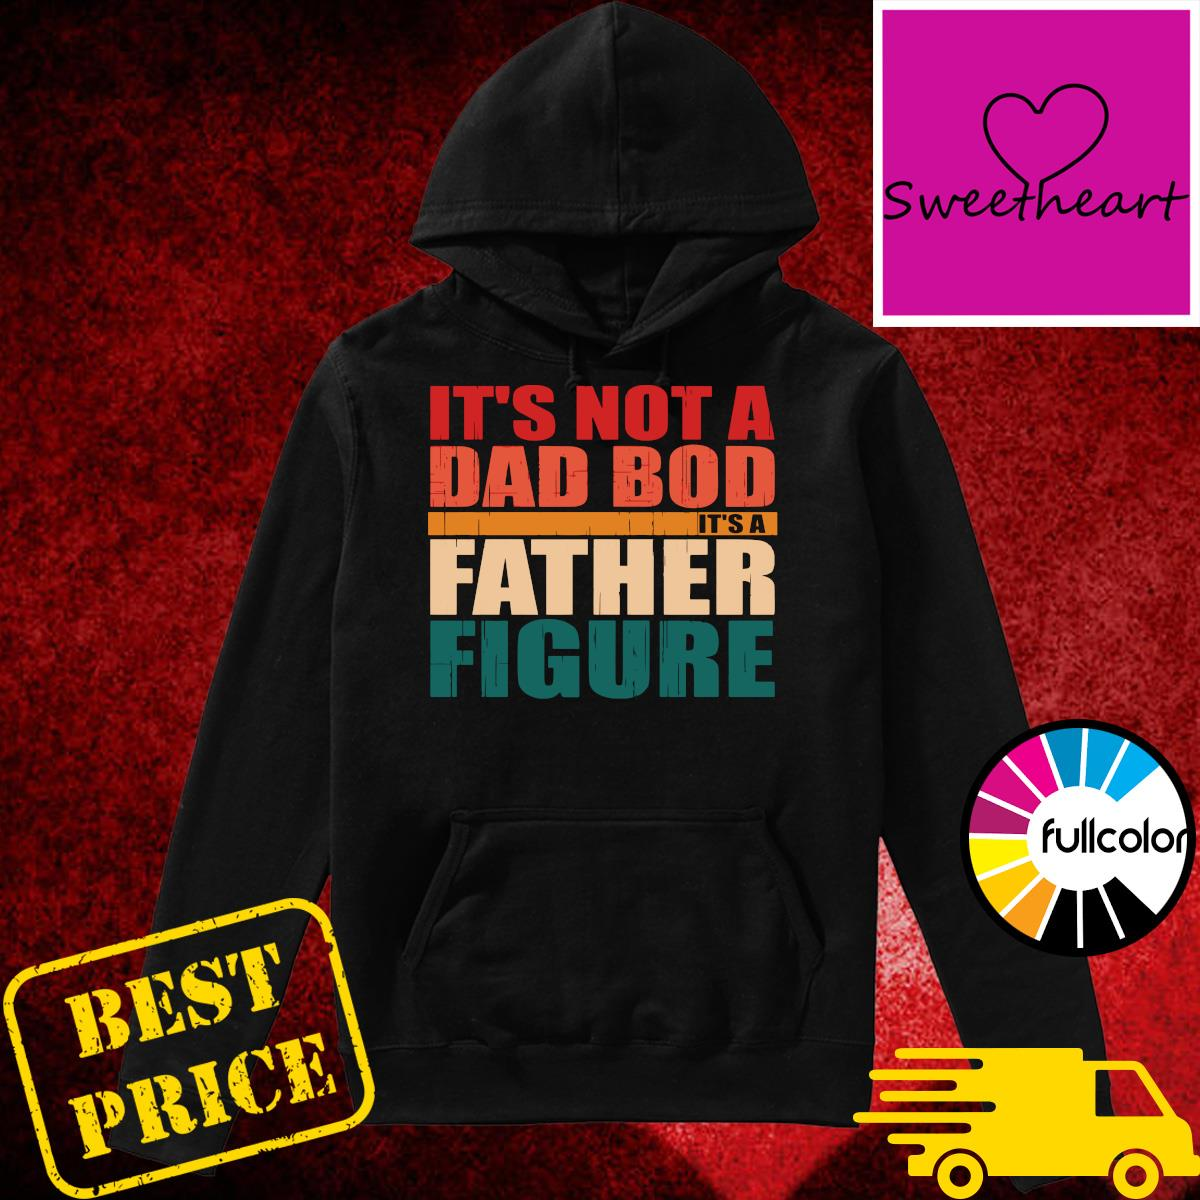 Official Father's Day 2021 - It's Not A Dad Bod It's A Father Figure Shirt Hoodie